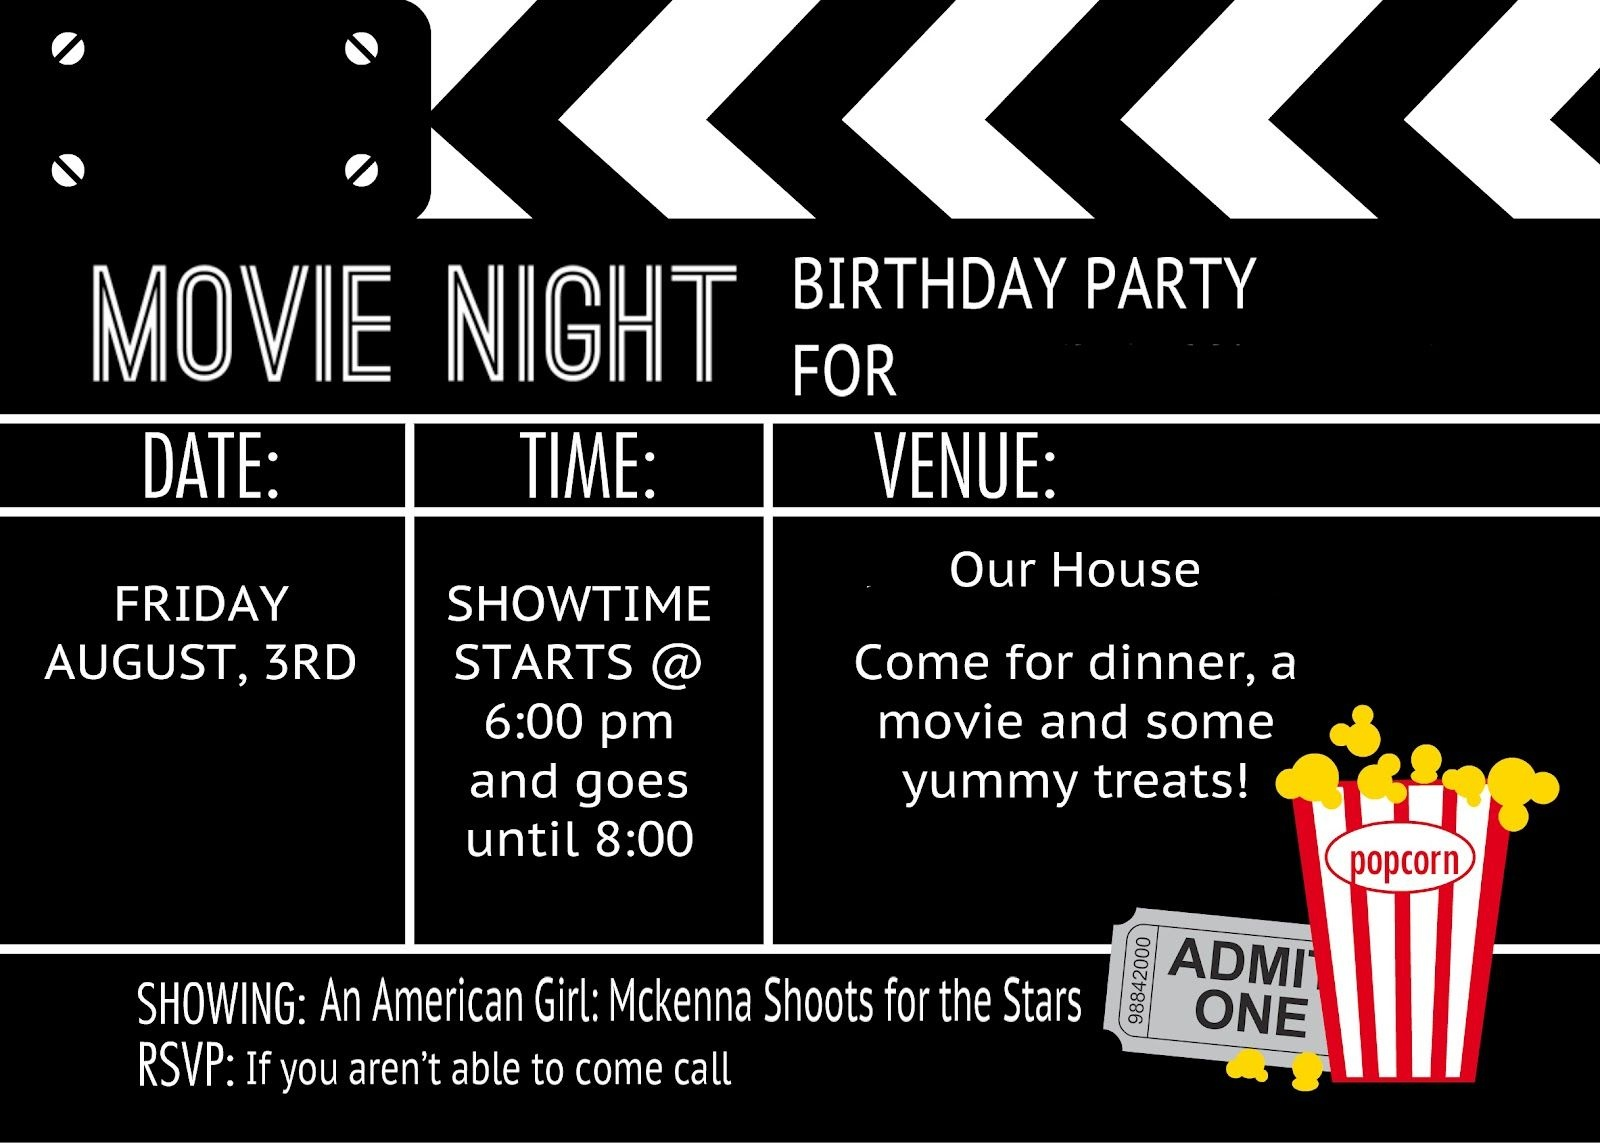 Birthday Party Invitation Templates Movie Theme | Kalli's 13Th - Movie Birthday Party Invitations Free Printable